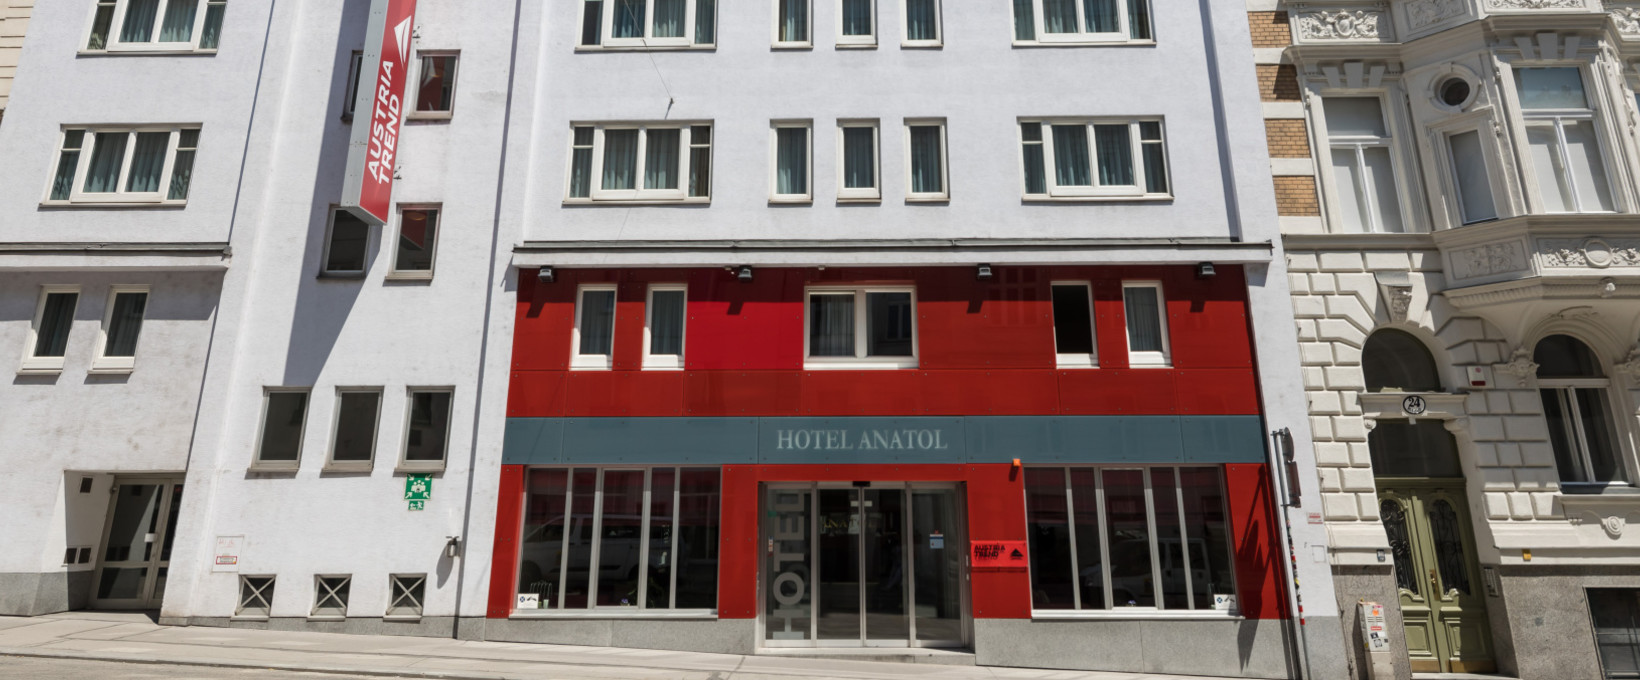 Exterior view hotel entrance | Hotel Anatol in Vienna